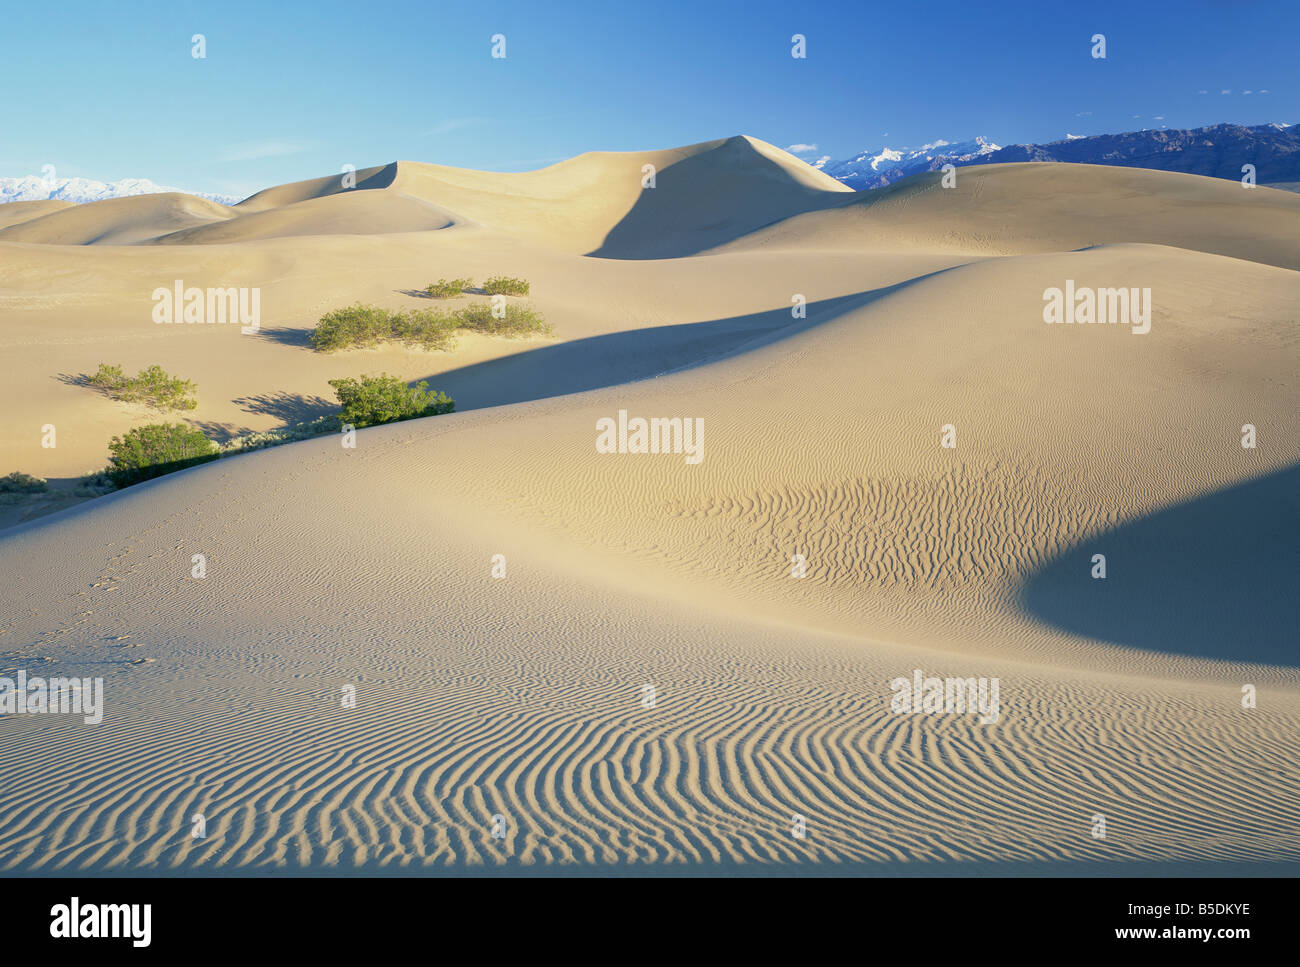 Sand dunes, Death Valley National Monument, California, USA, North America - Stock Image